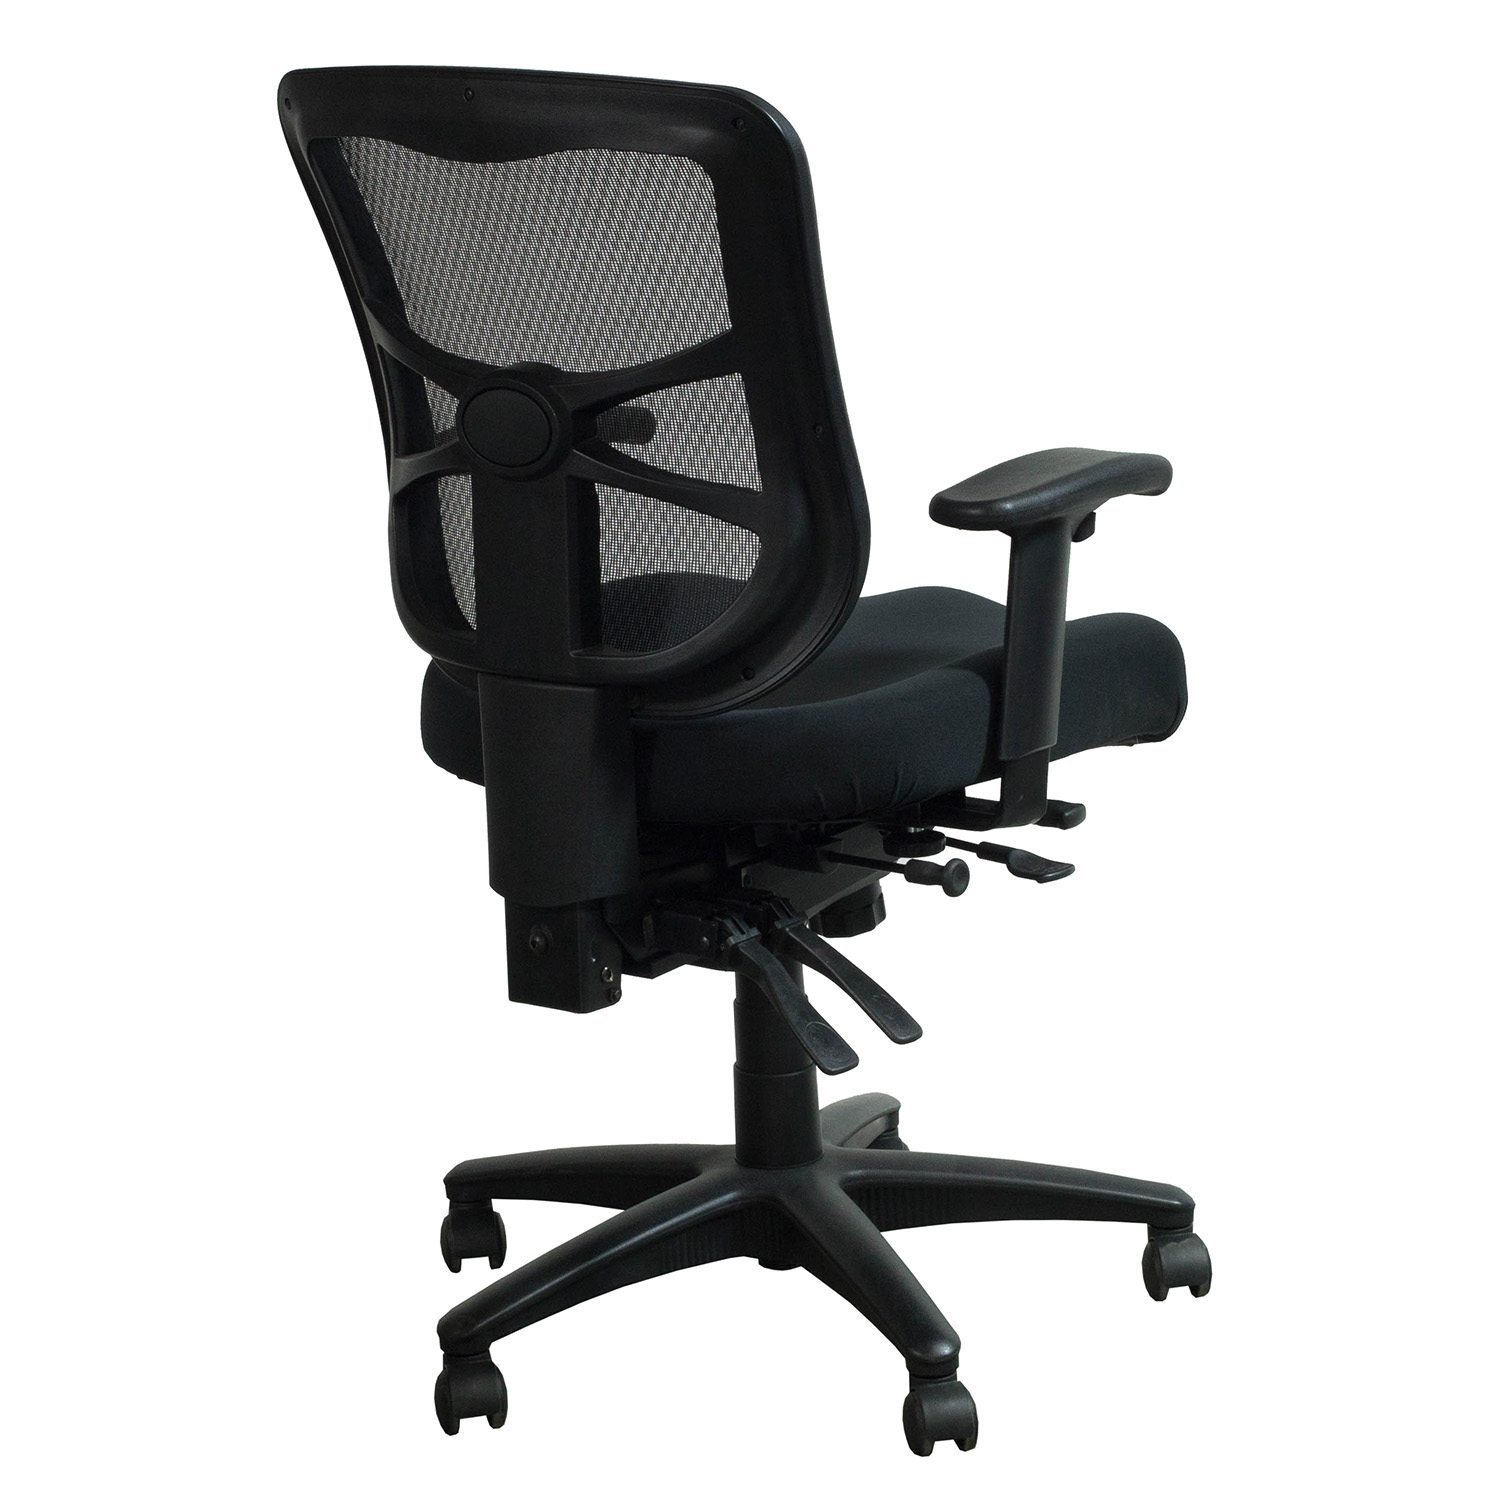 Alera Chair Alera Elusion Series Used Mesh Mid Back Chair Black